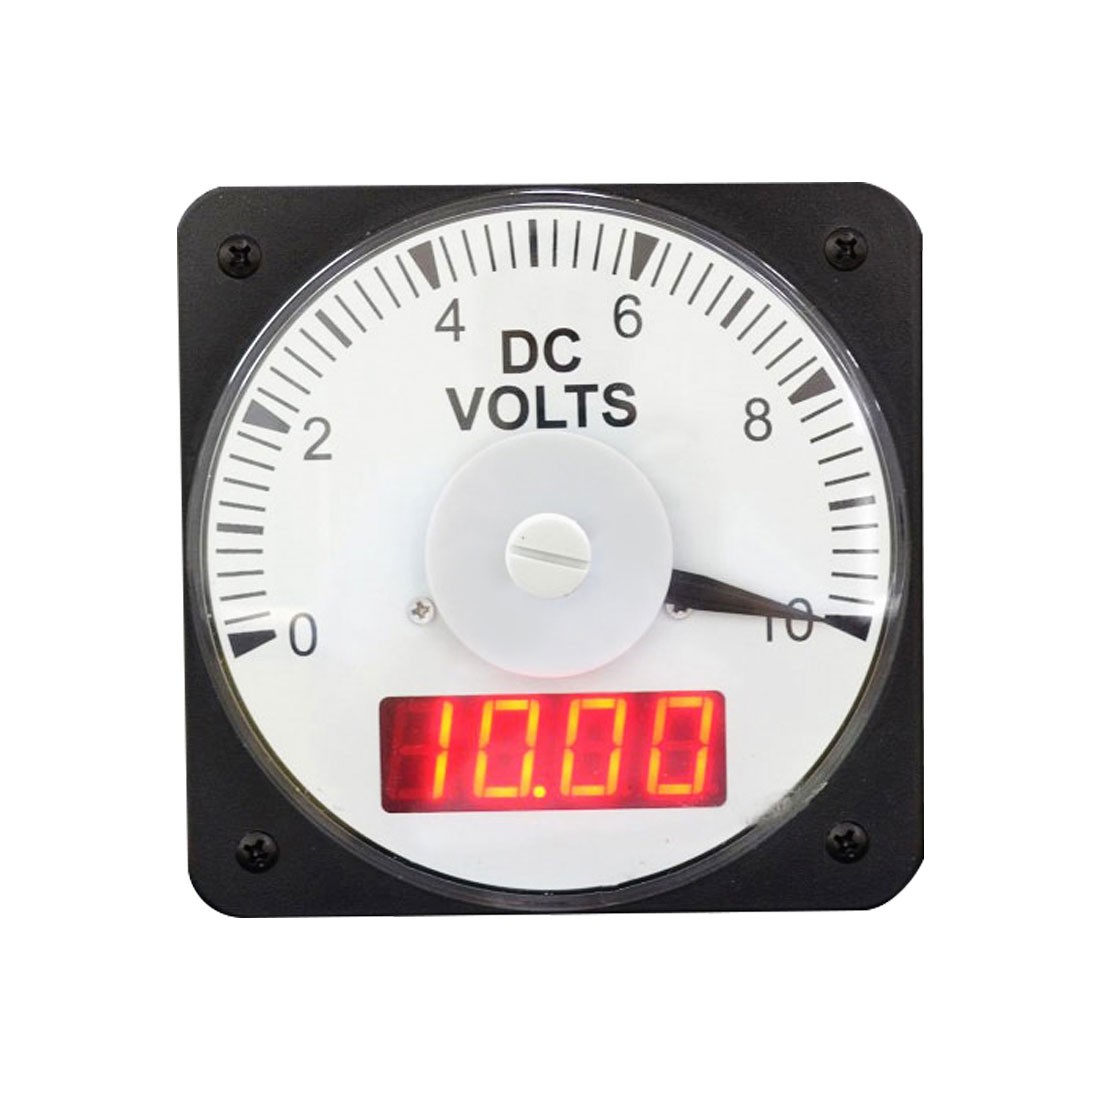 HLS-110DI (TWO-VUE) DC or AC Analog and Digital Combo Panel Meter - Front View